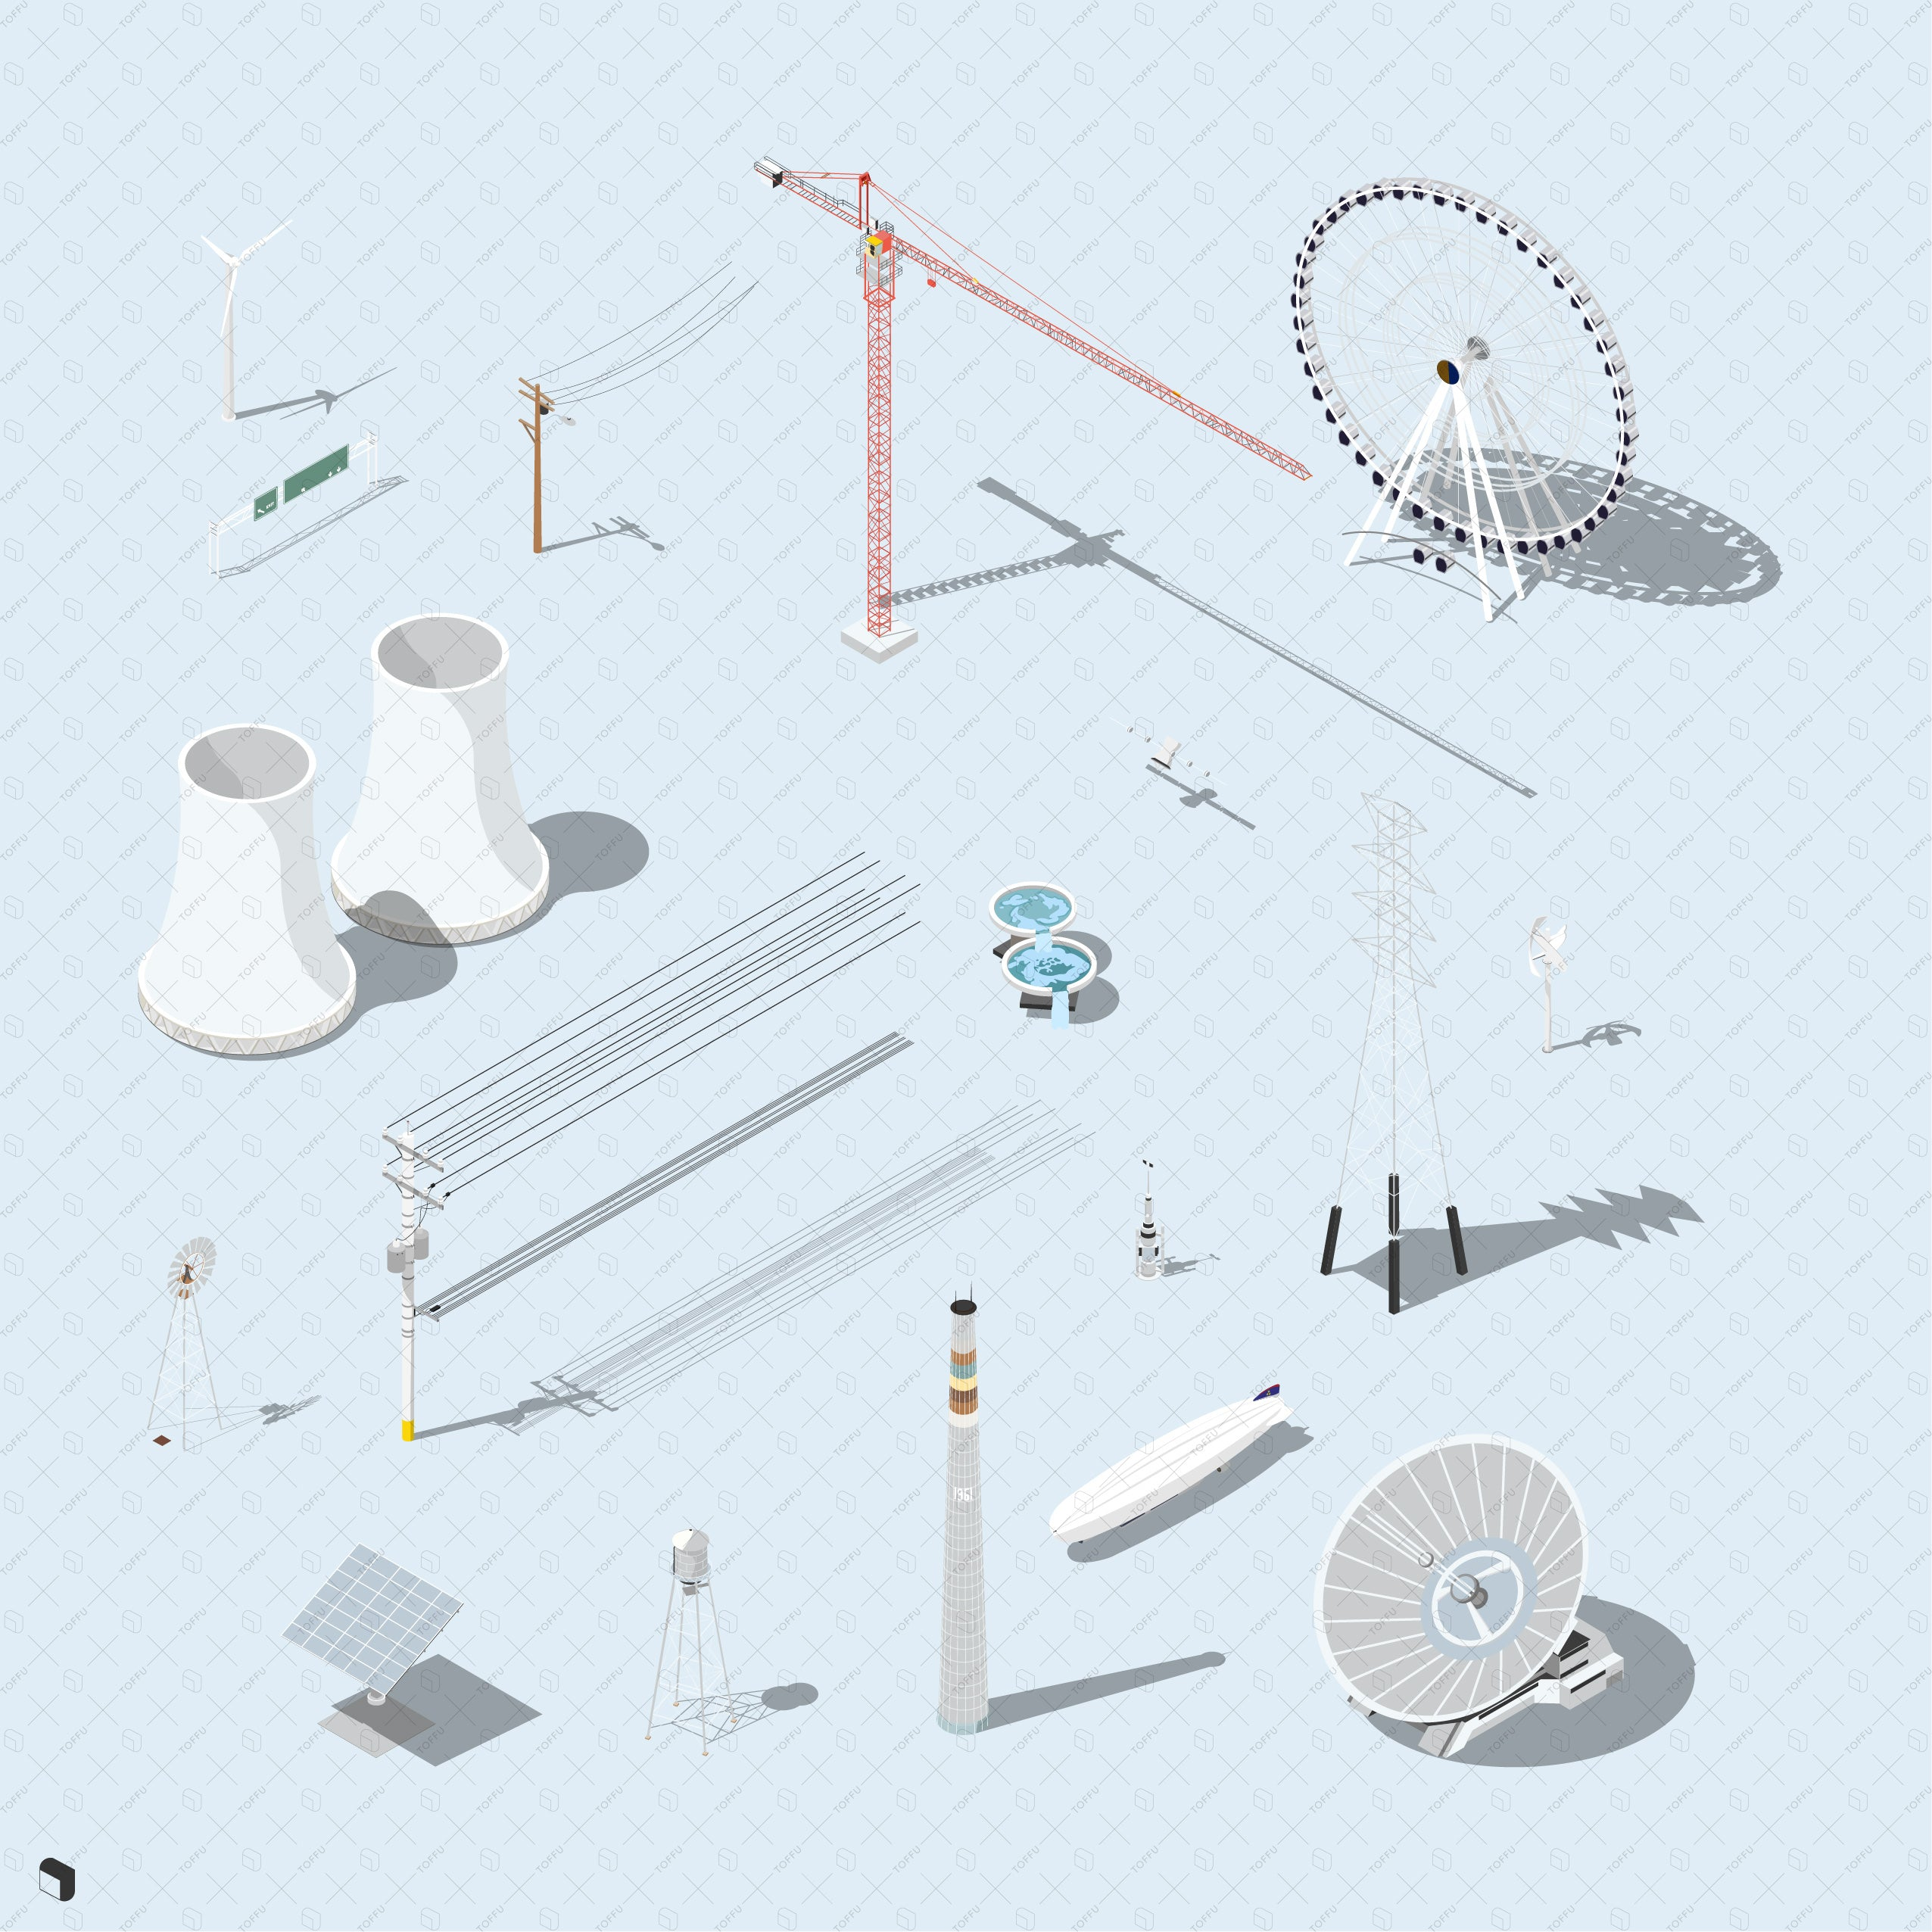 ferris wheel, chimney, satellite axonometric vector drawings